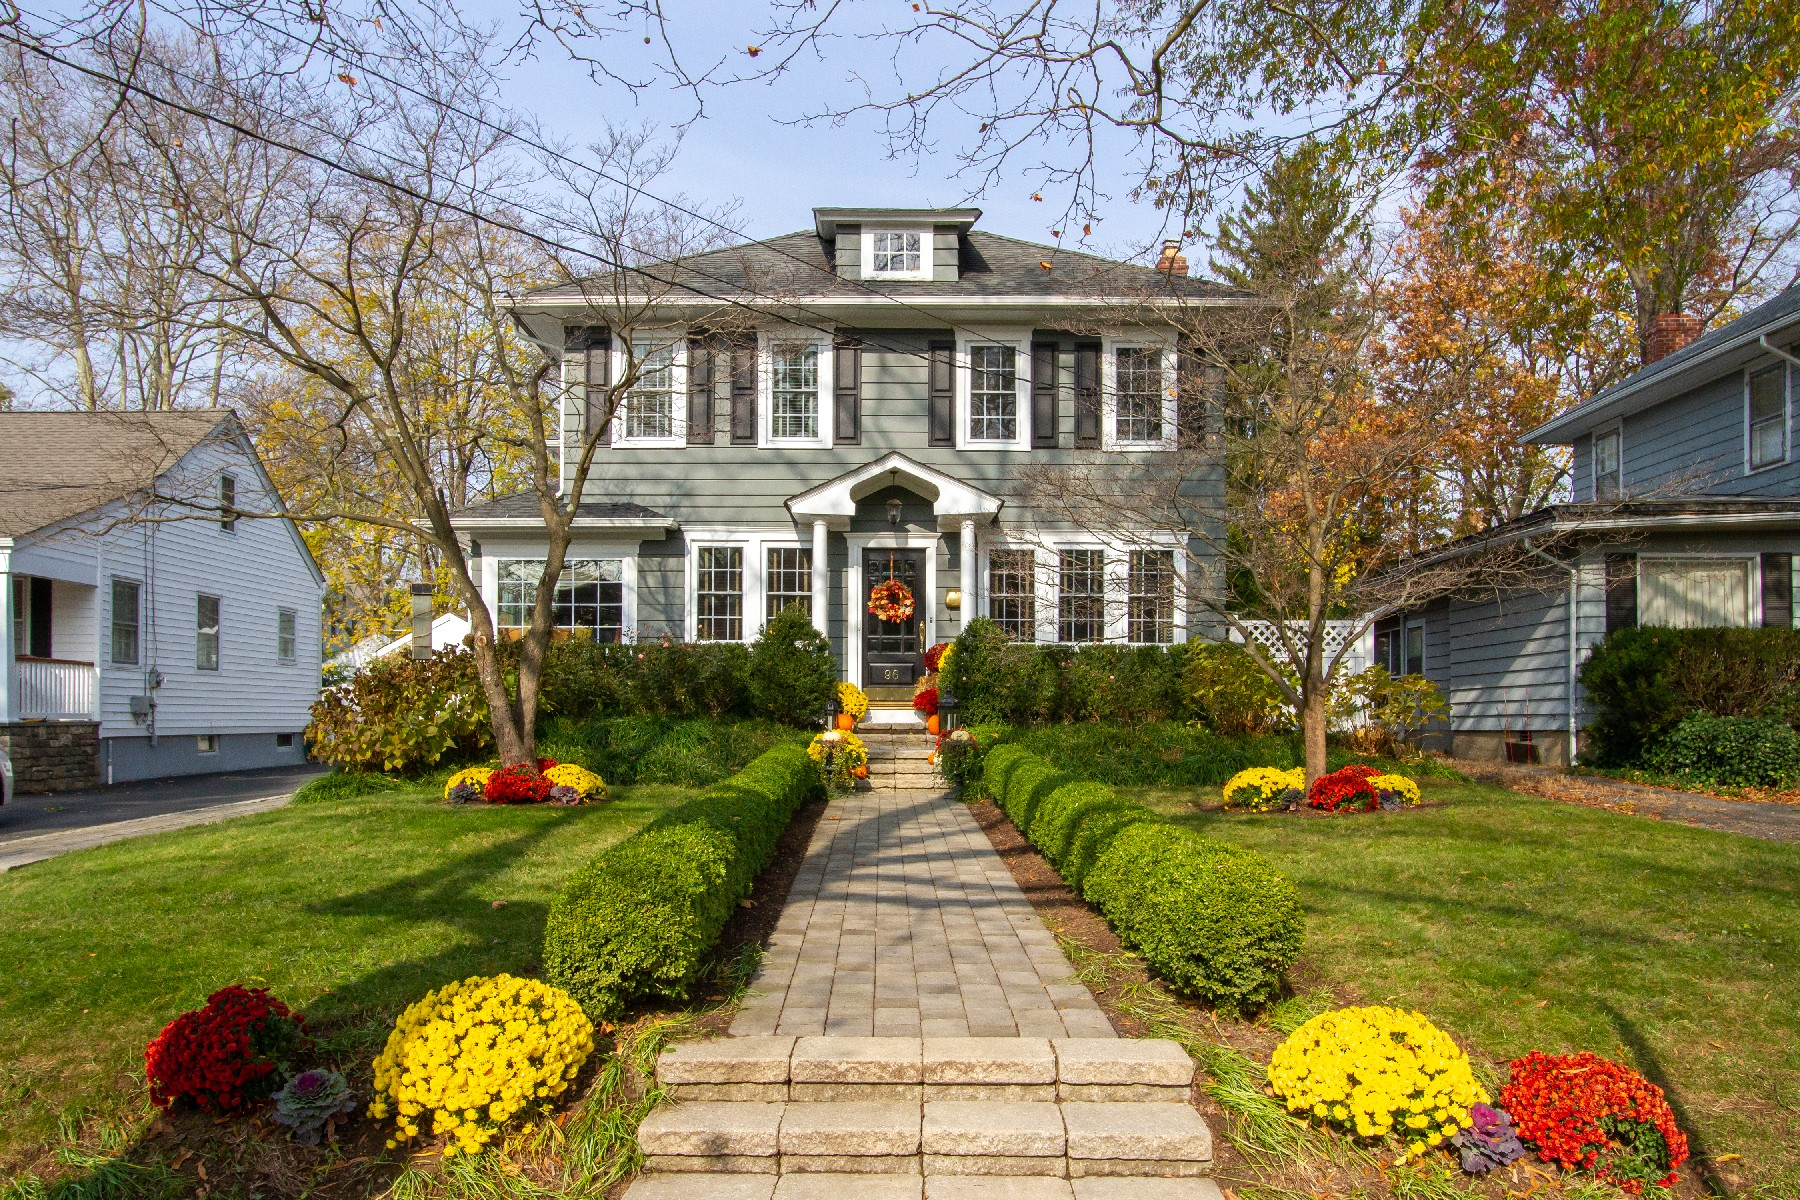 Single Family Home for Sale at Red Bank Charmer 96 E Bergen Place, Red Bank, New Jersey 07701 United States